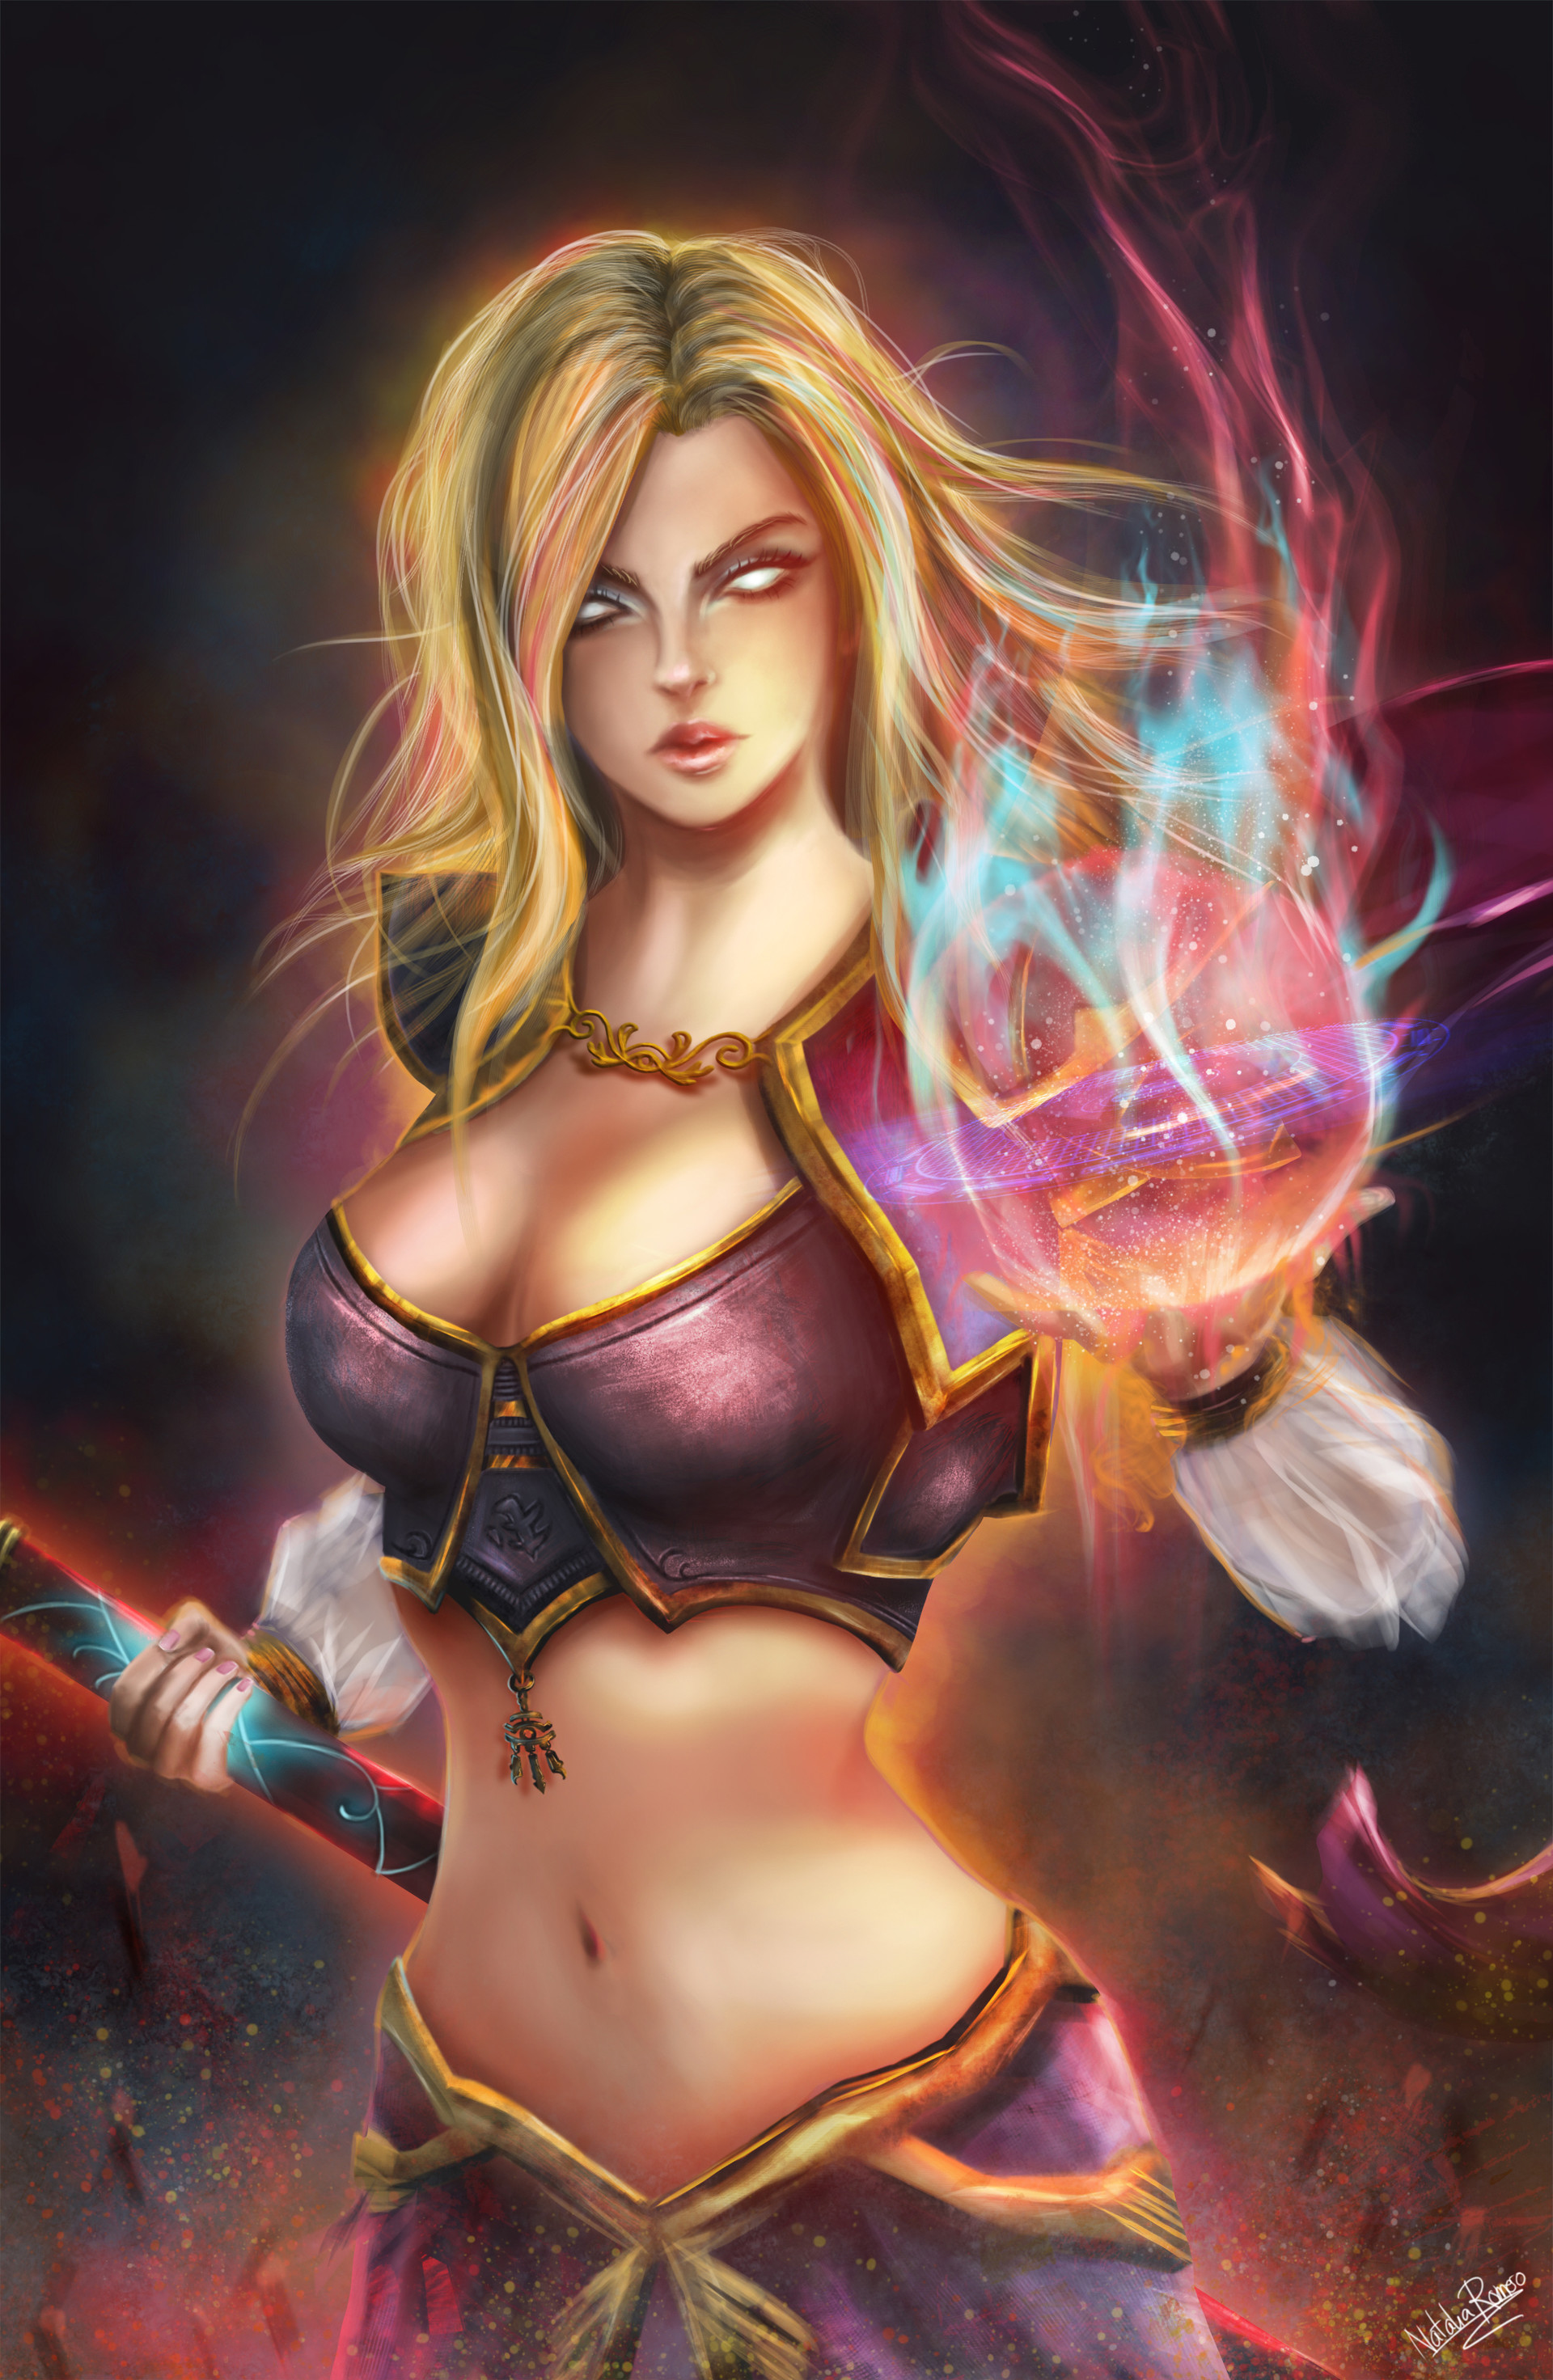 Jaina proudmoore hot sex anime thumbs